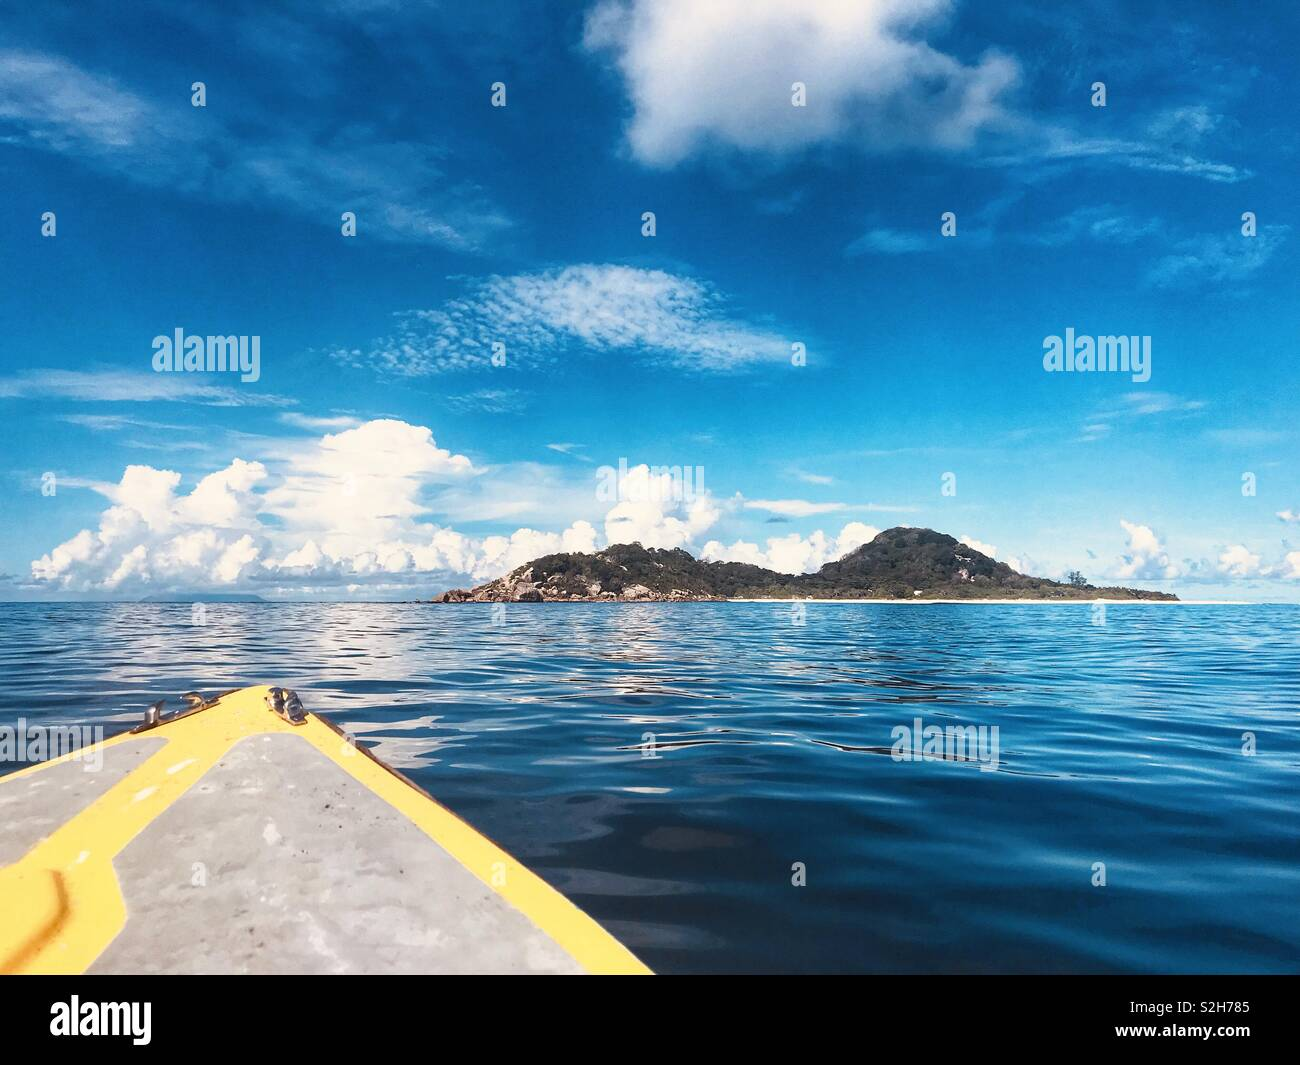 The view of Cousine Island, Seychelles, Indian Ocean from a boat. - Stock Image